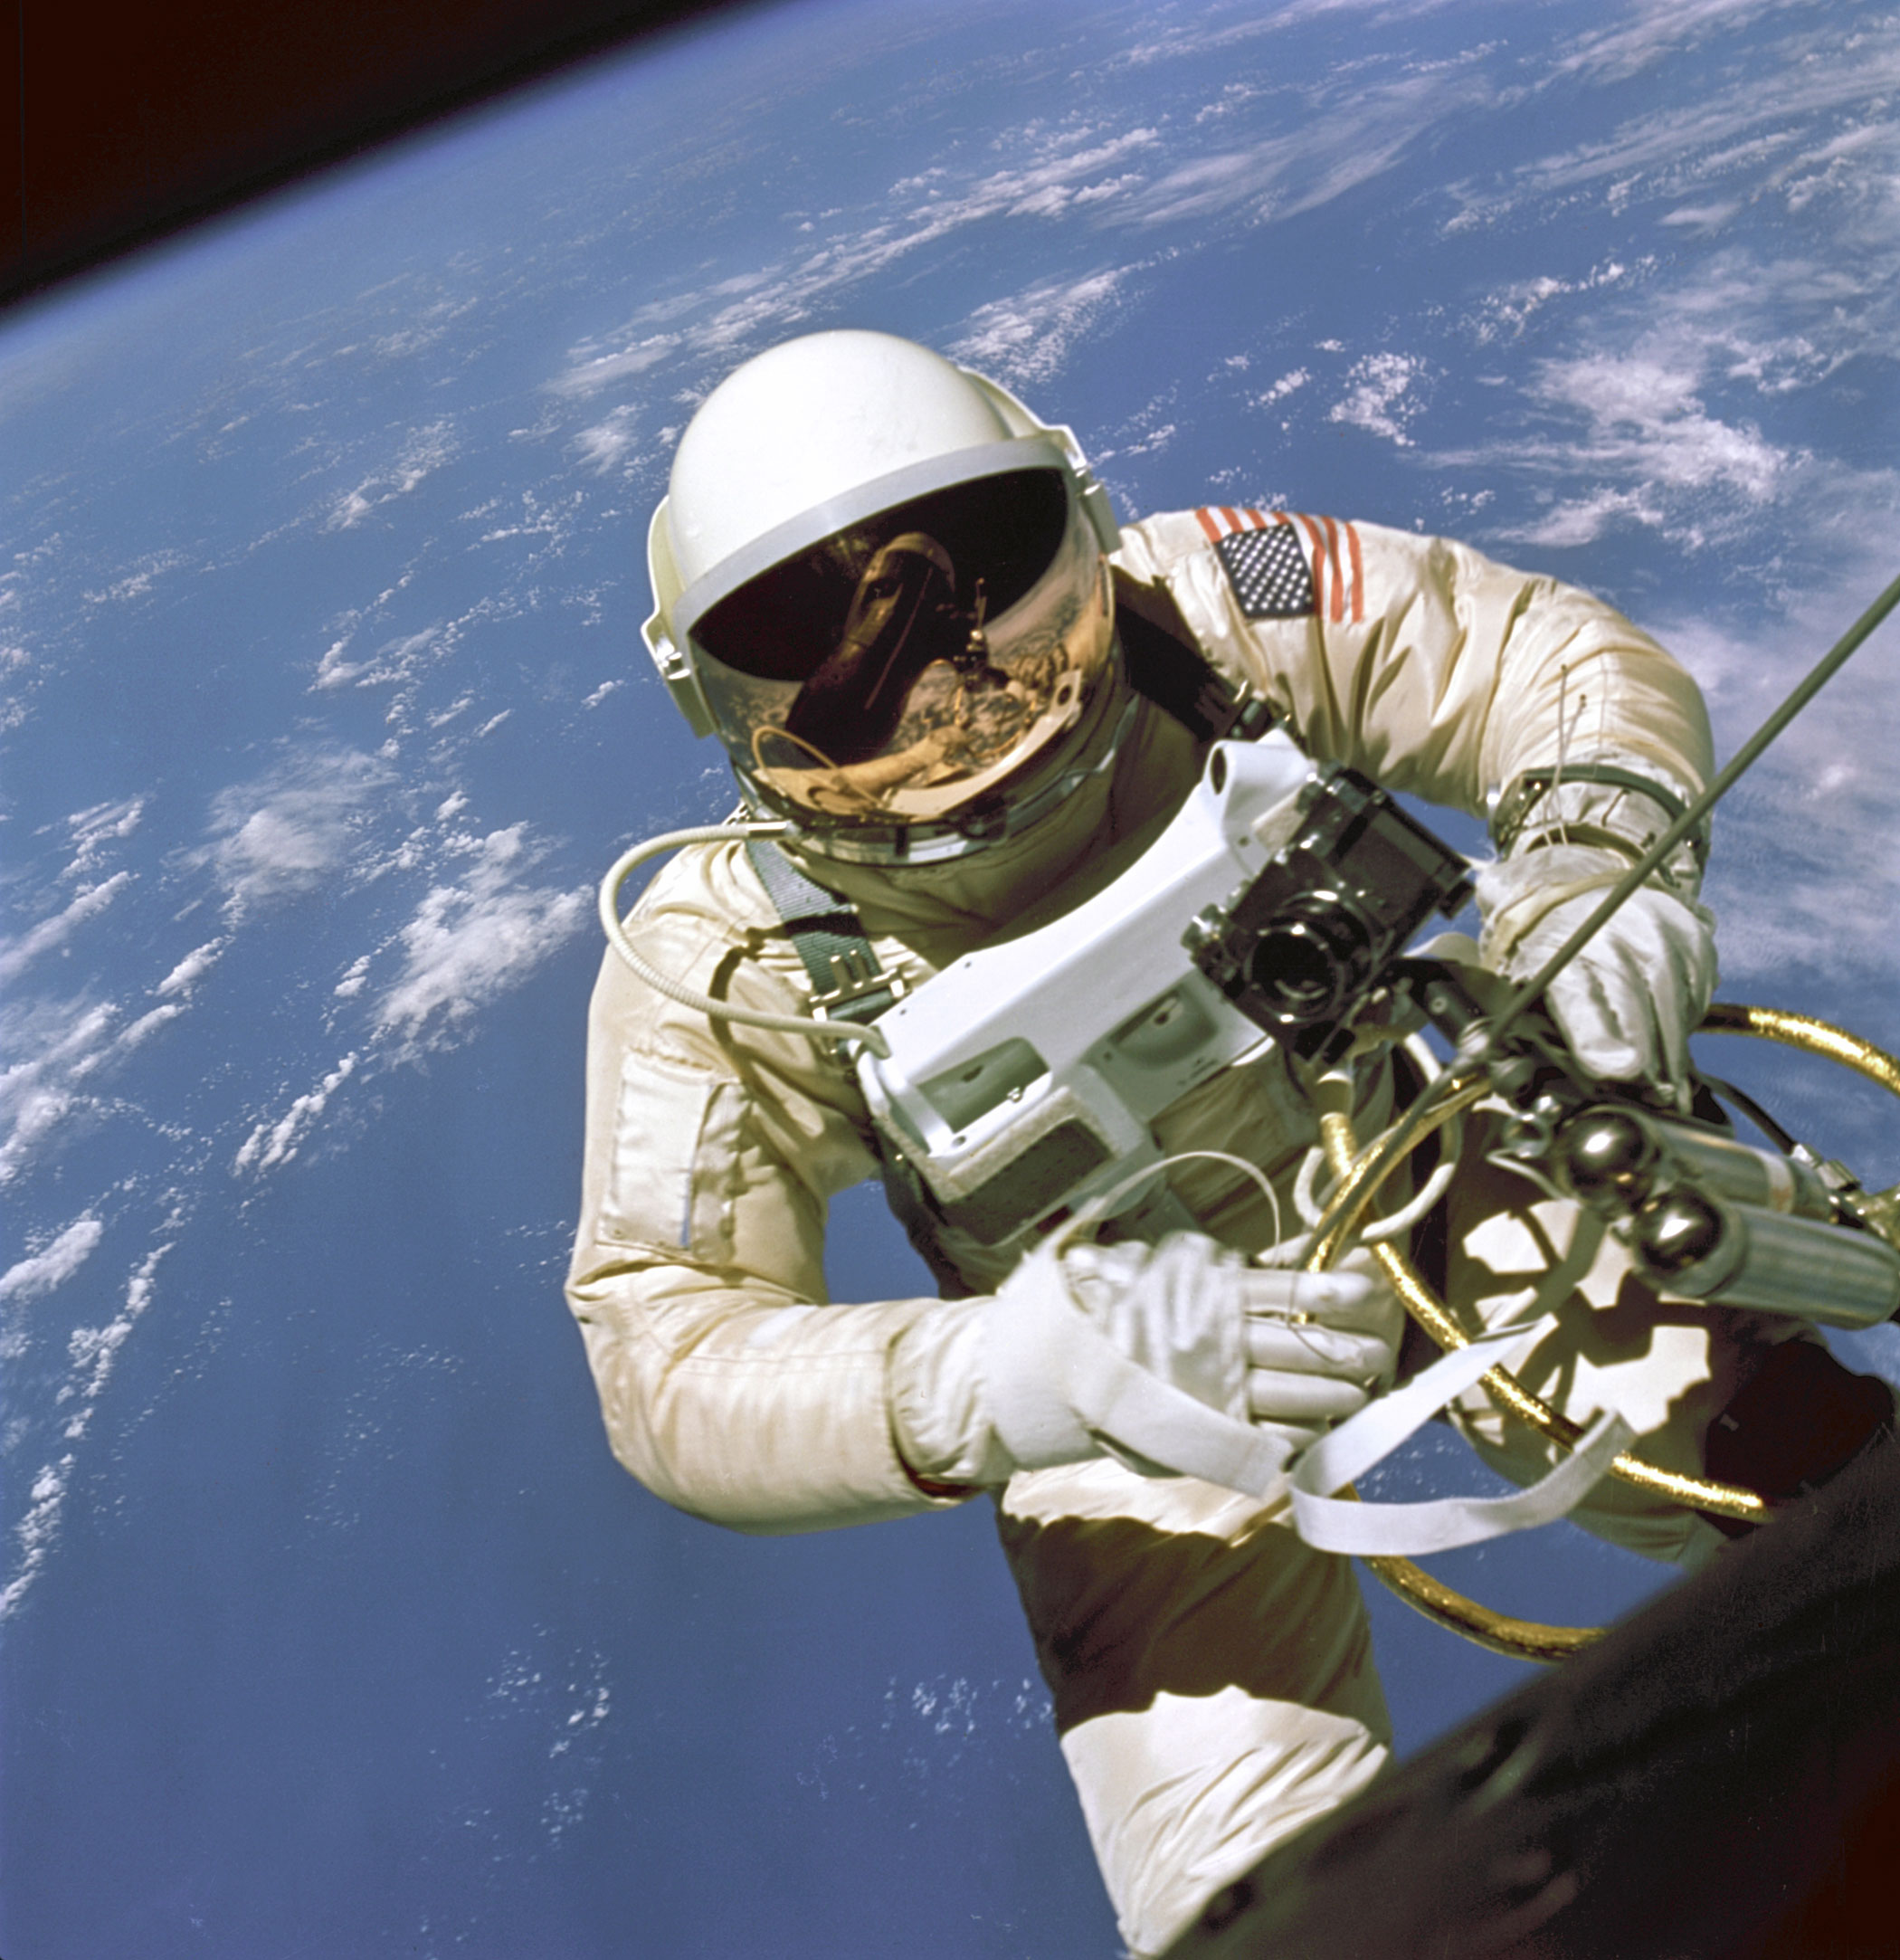 <b>America's First Space Walk, 1965</b>; Astronaut Edward H. White II, pilot for the Gemini-Titan 4 space flight, floats in space during America's first spacewalk on June 3, 1965.